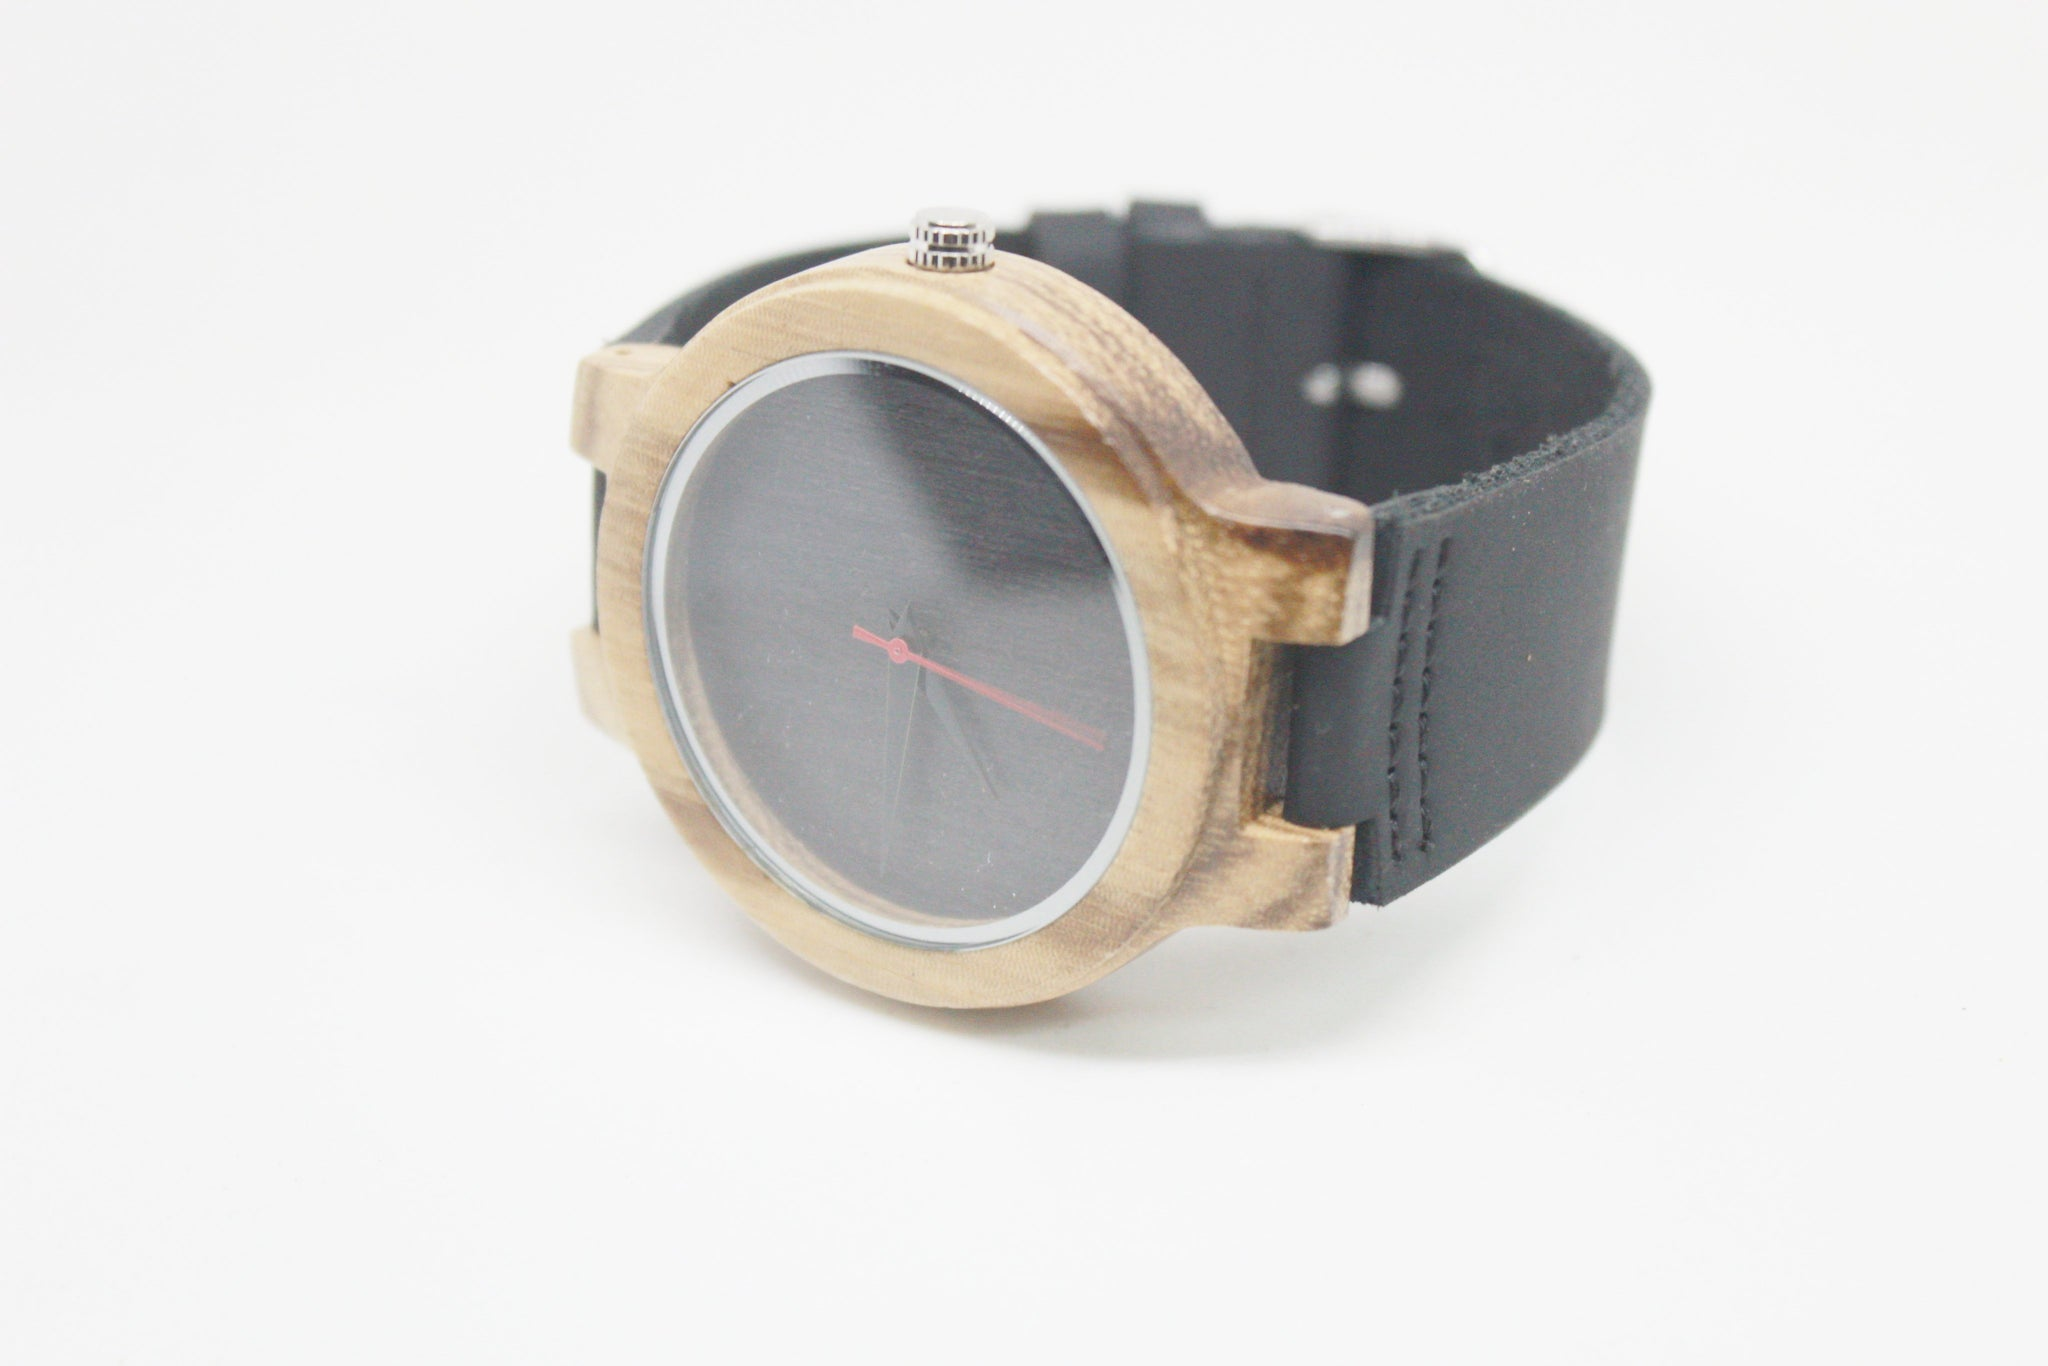 The Jared Wood Round Watch